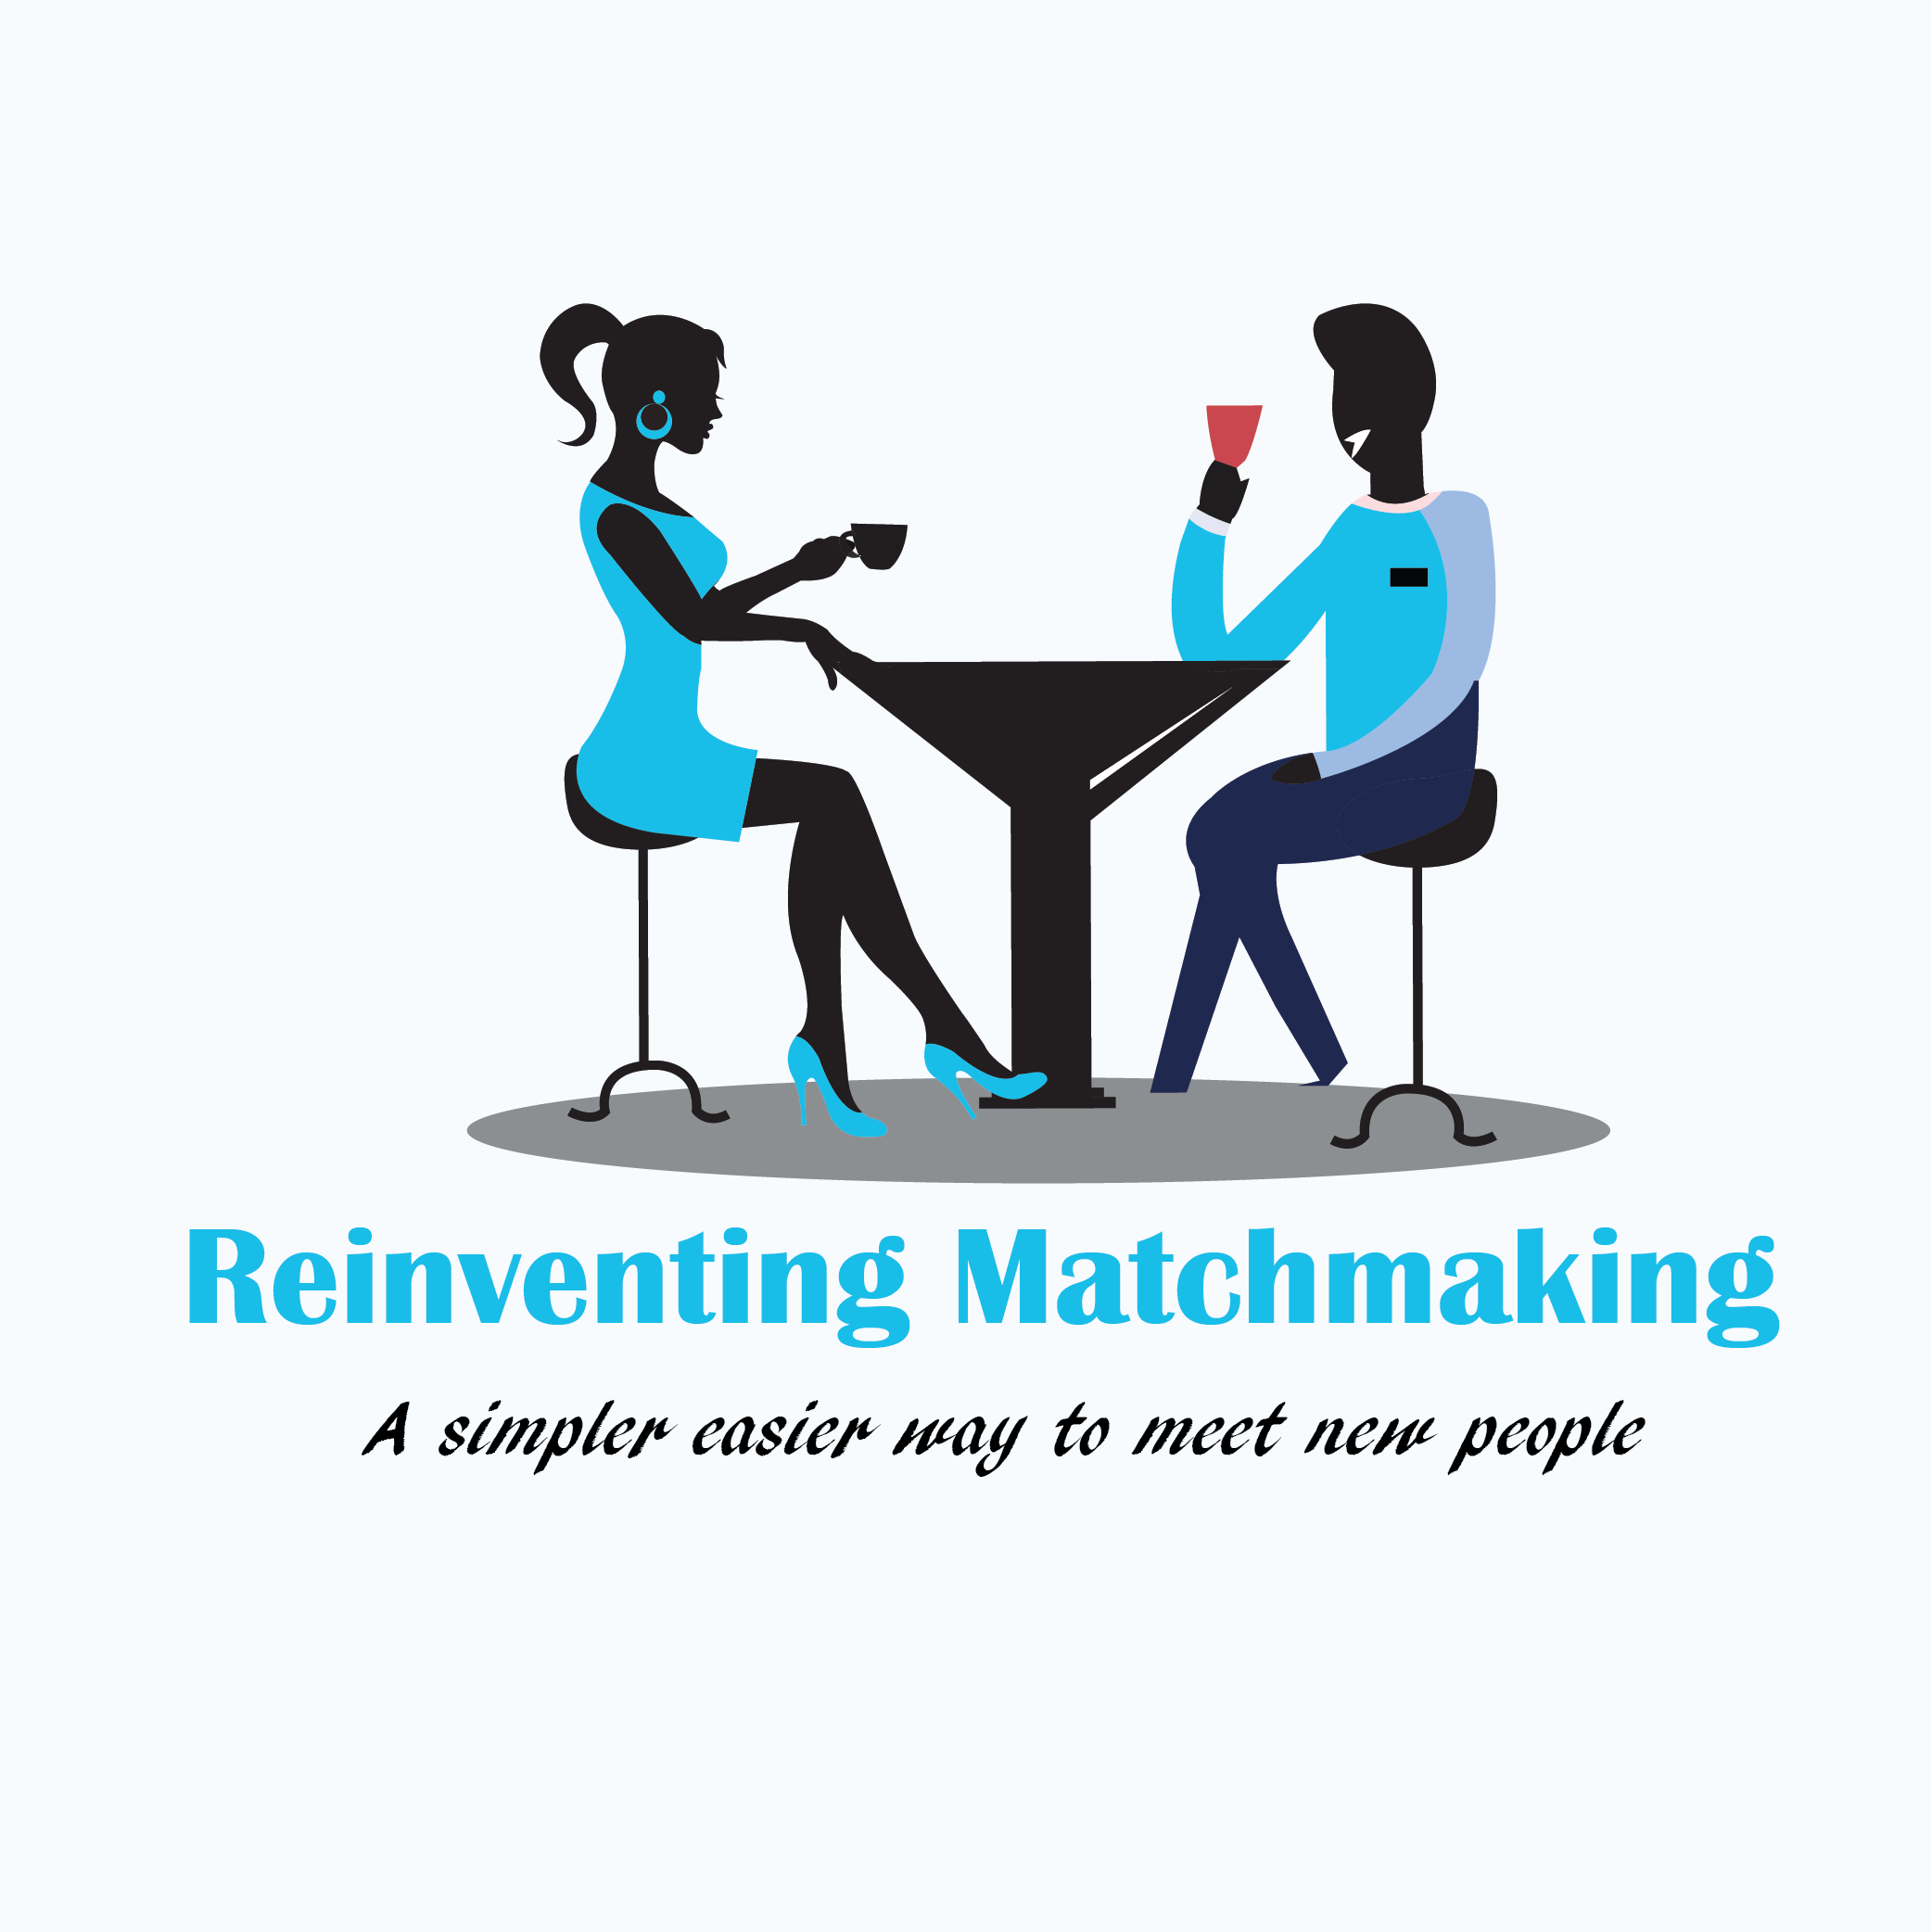 Reinventing Matchmaking